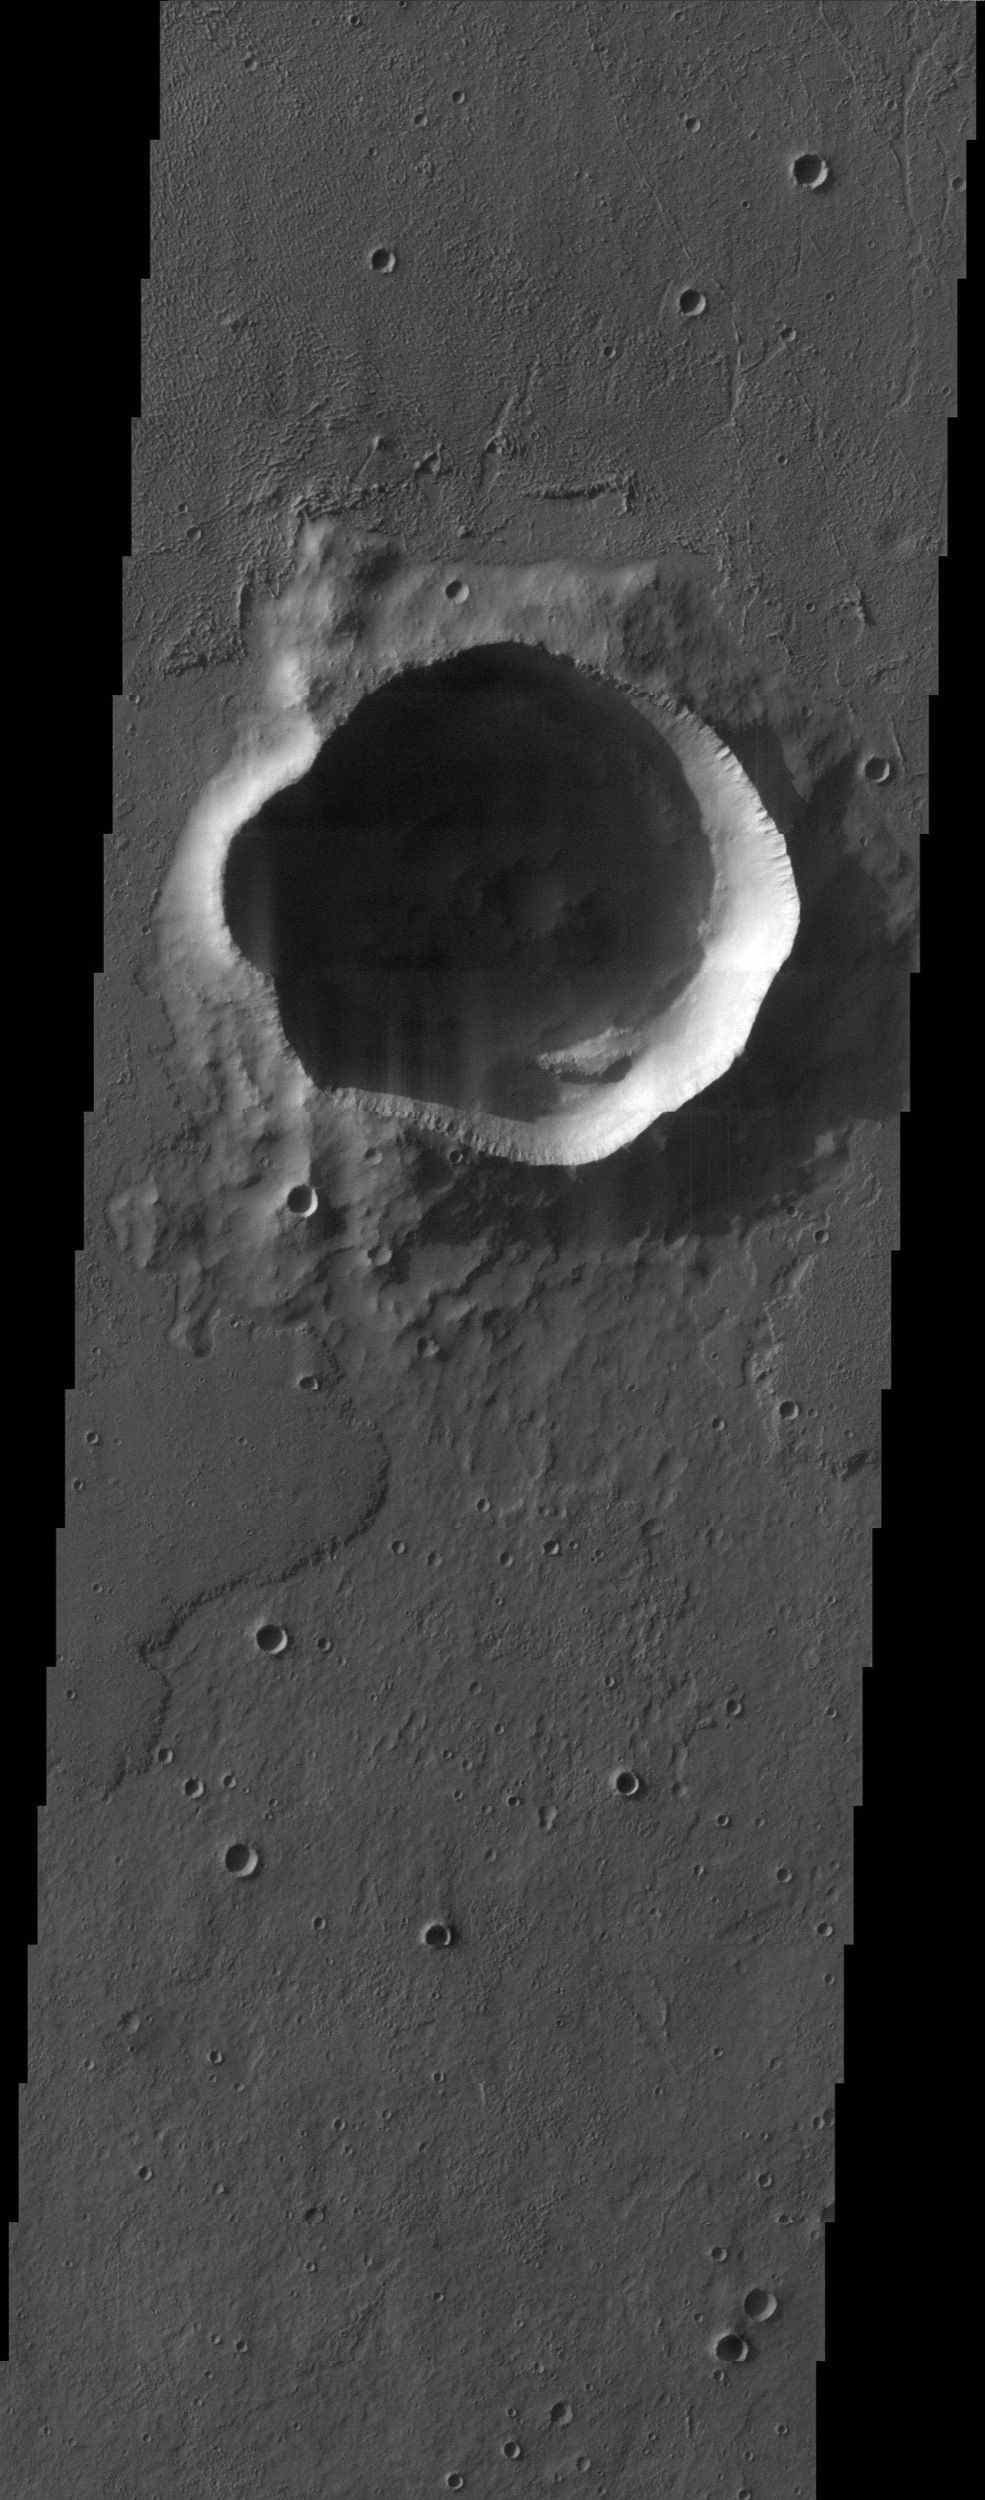 The irregularly shaped rim of the bowl-shaped impact crater in this NASA Mars Odyssey image is most likely due to erosion and the subsequent infilling of sediment.